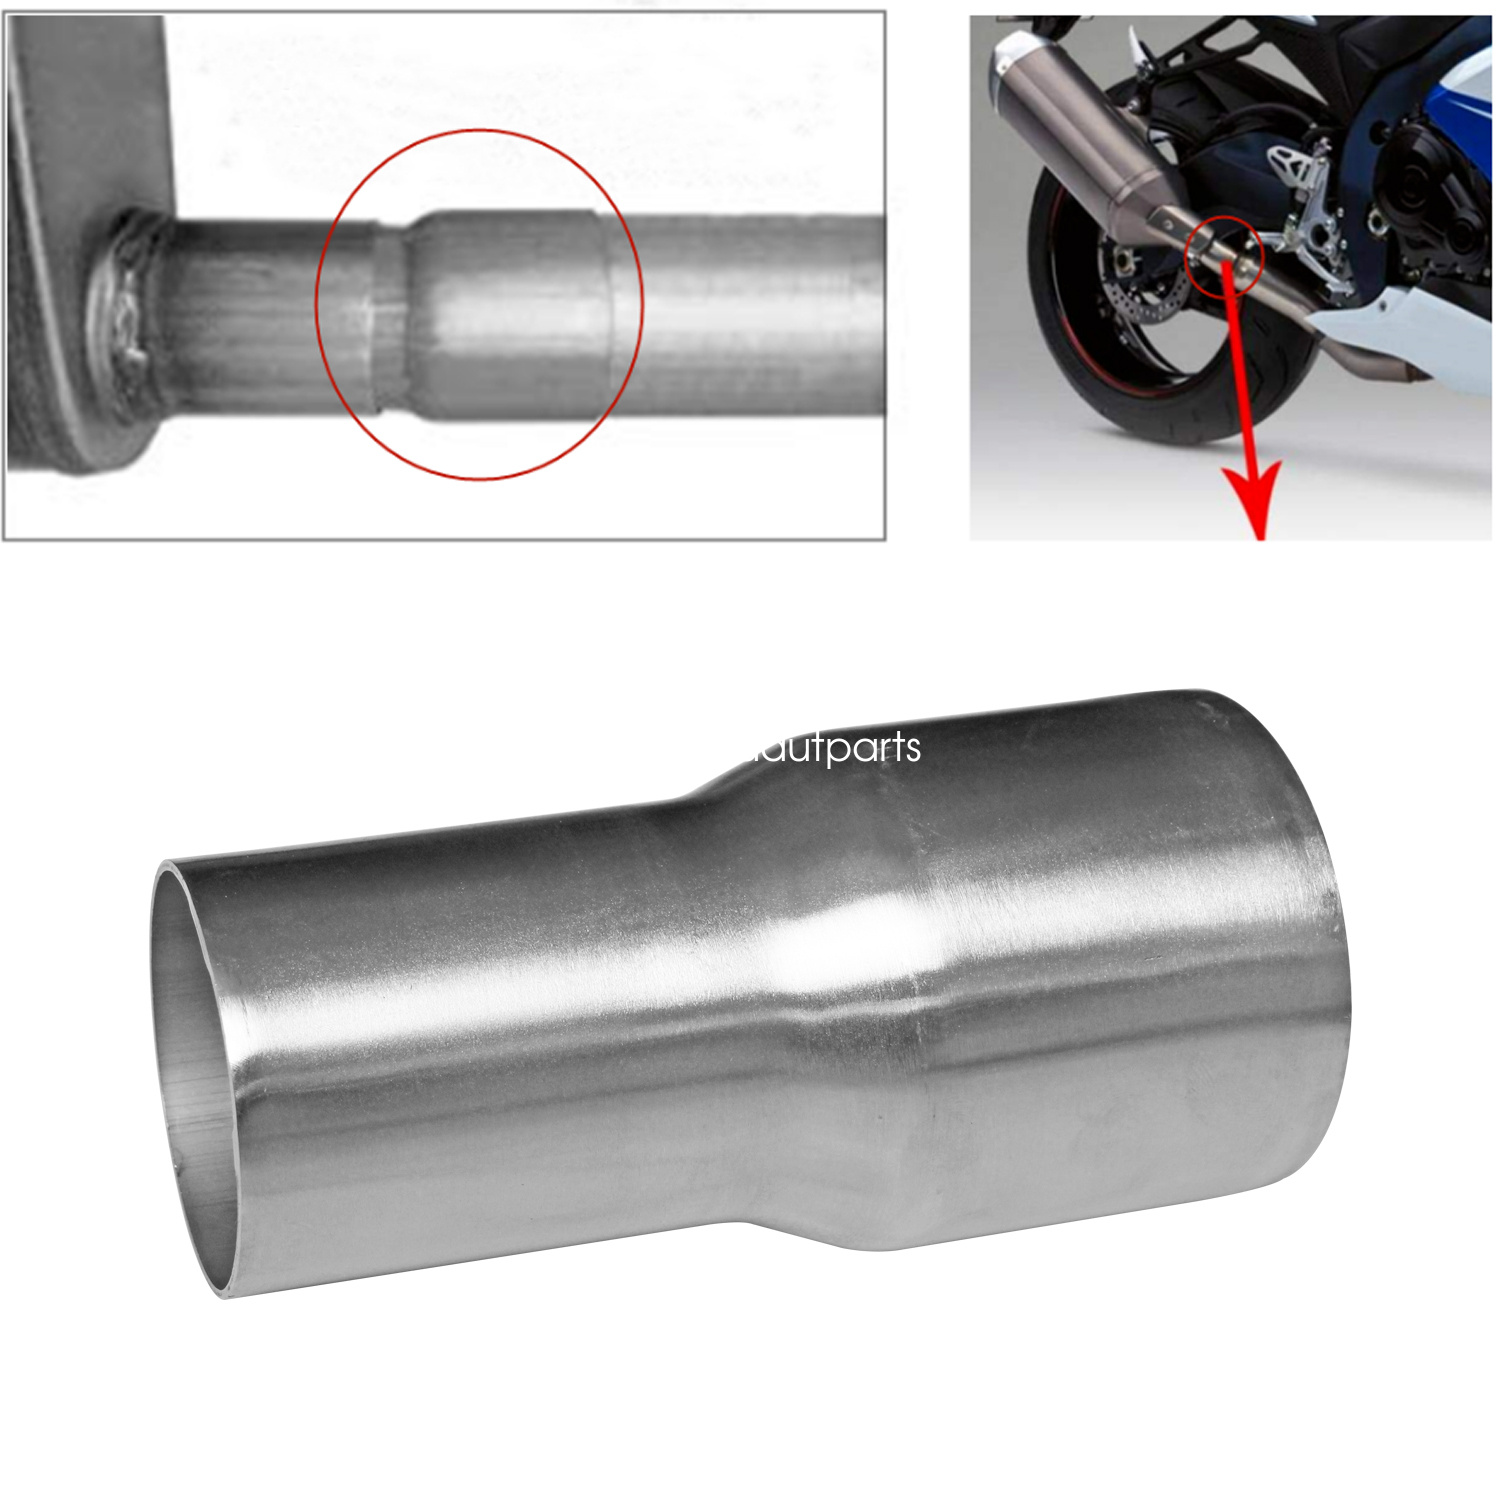 2.0 to 1.5 Motorcycle Exhaust Pipe Adapter Reducer Connector for Suzuki